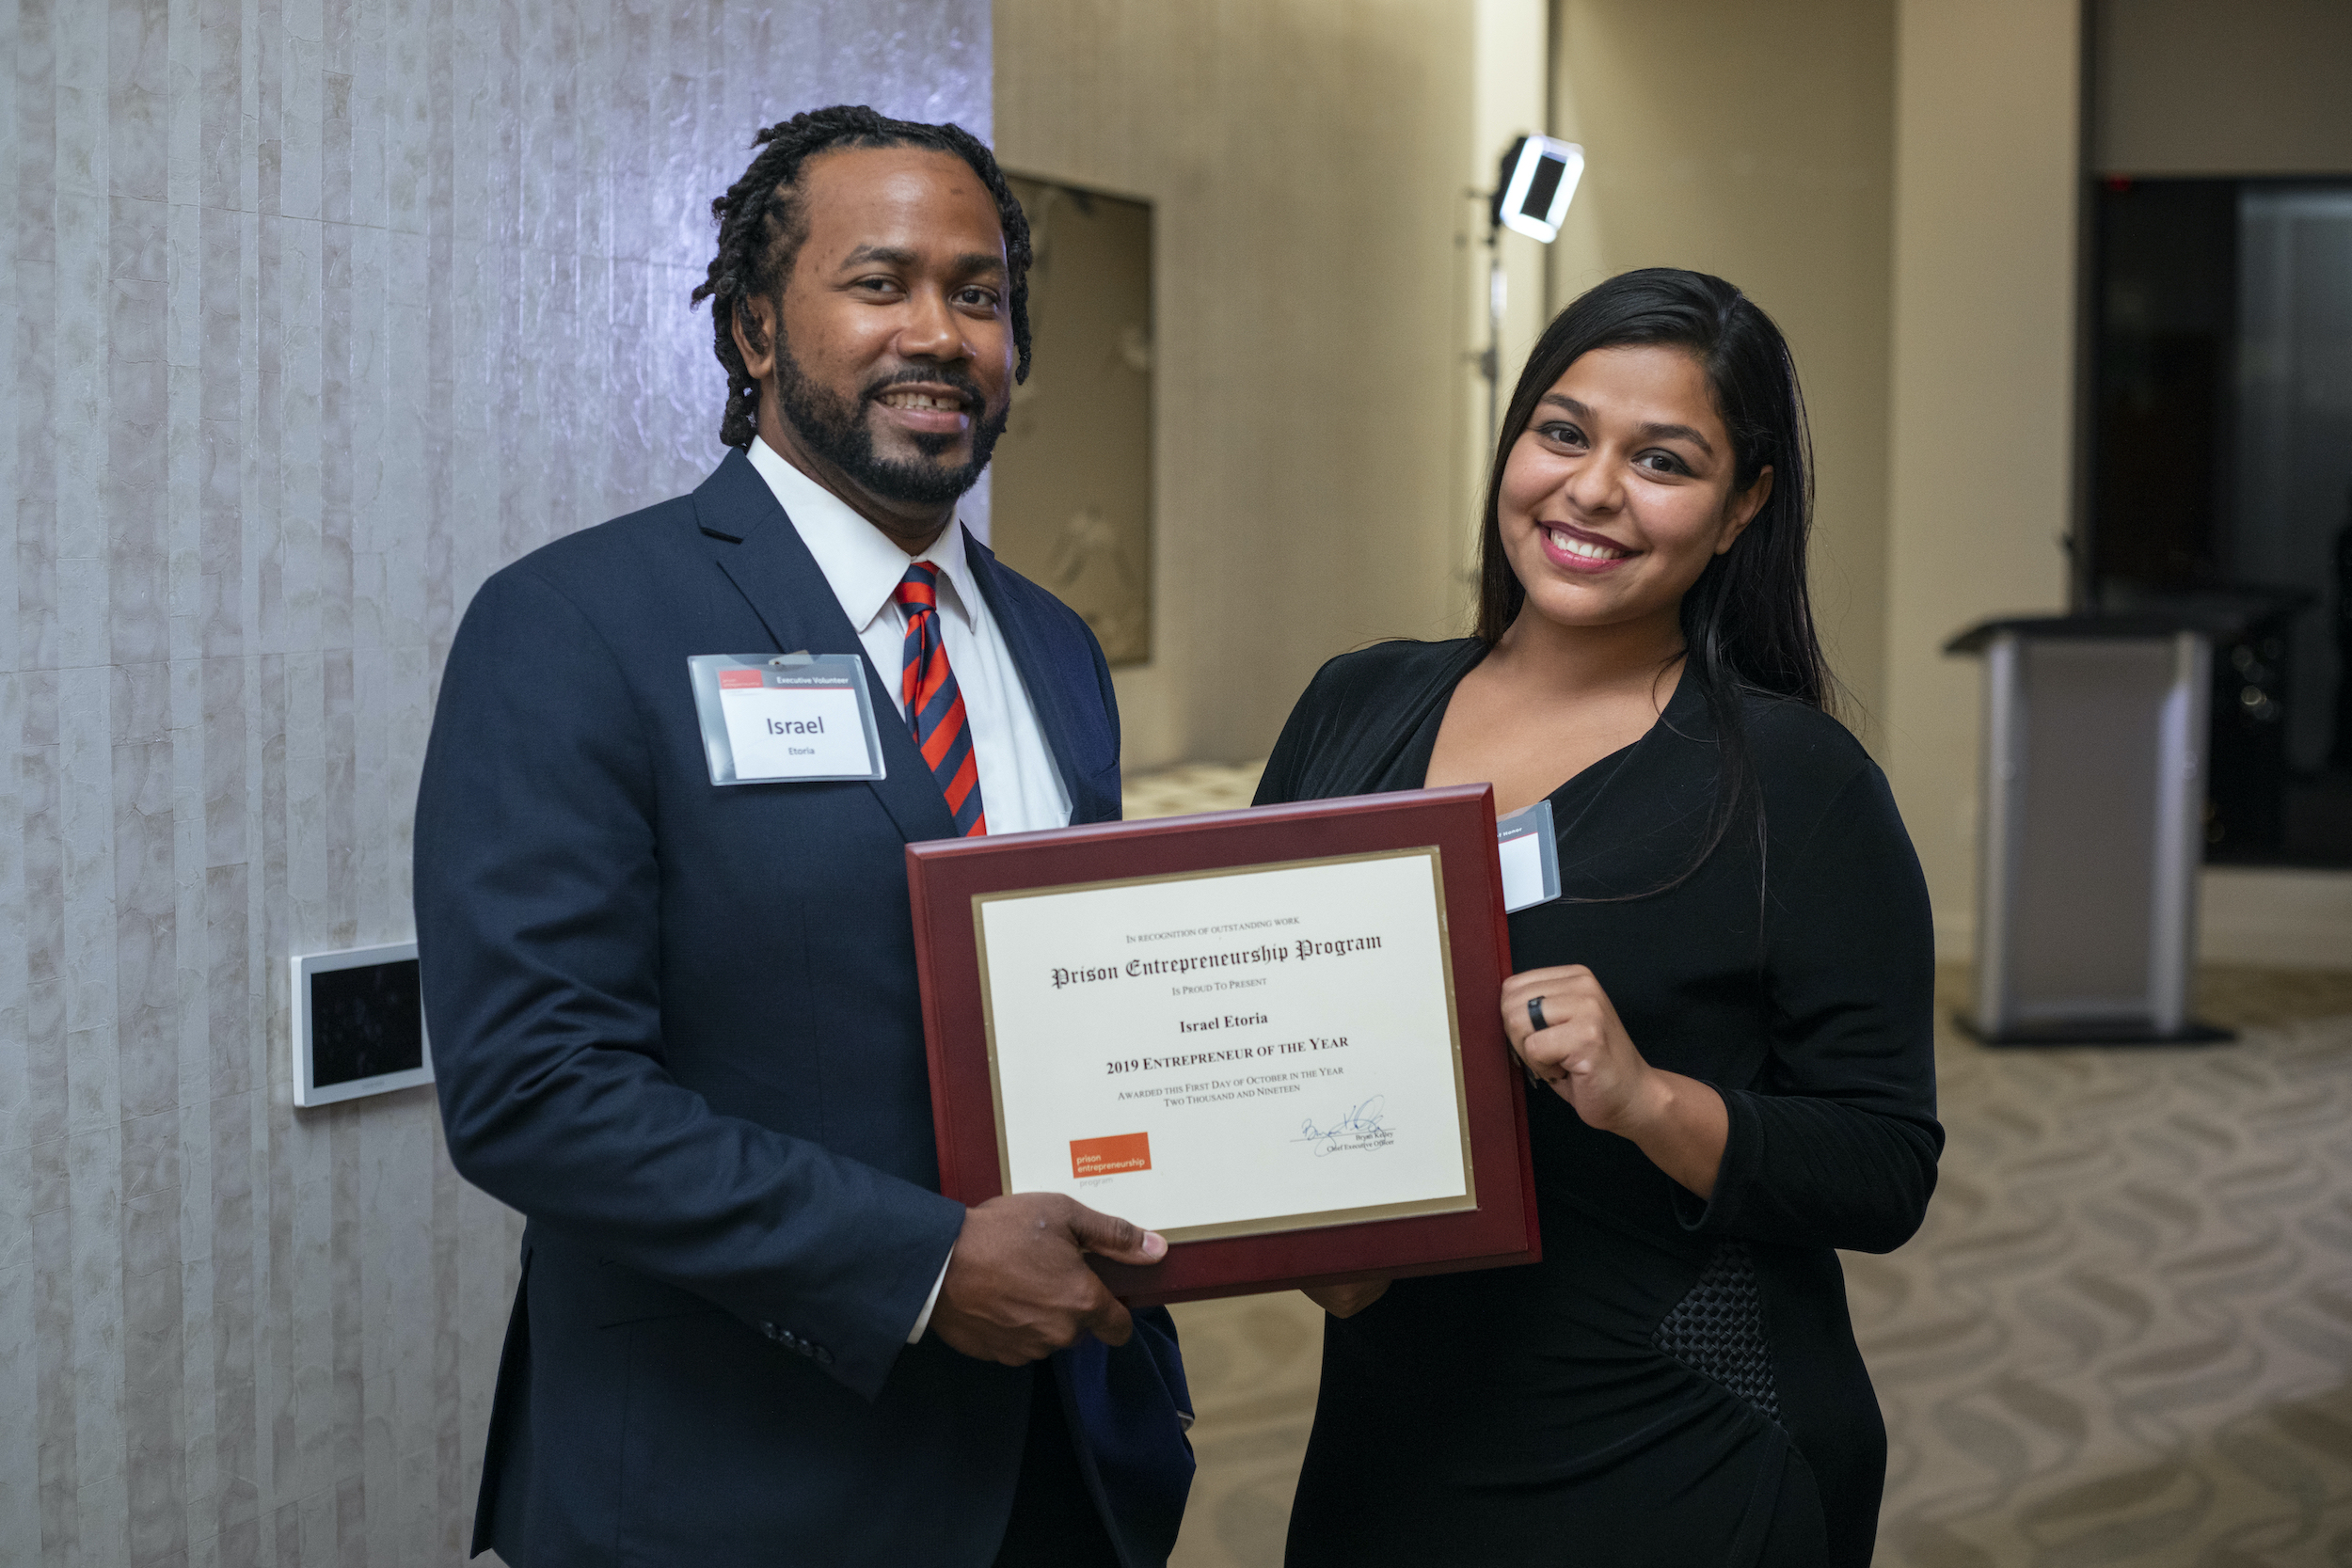 A man and a woman pose while holding a framed Prison Entrepreneurship Program Certificate.